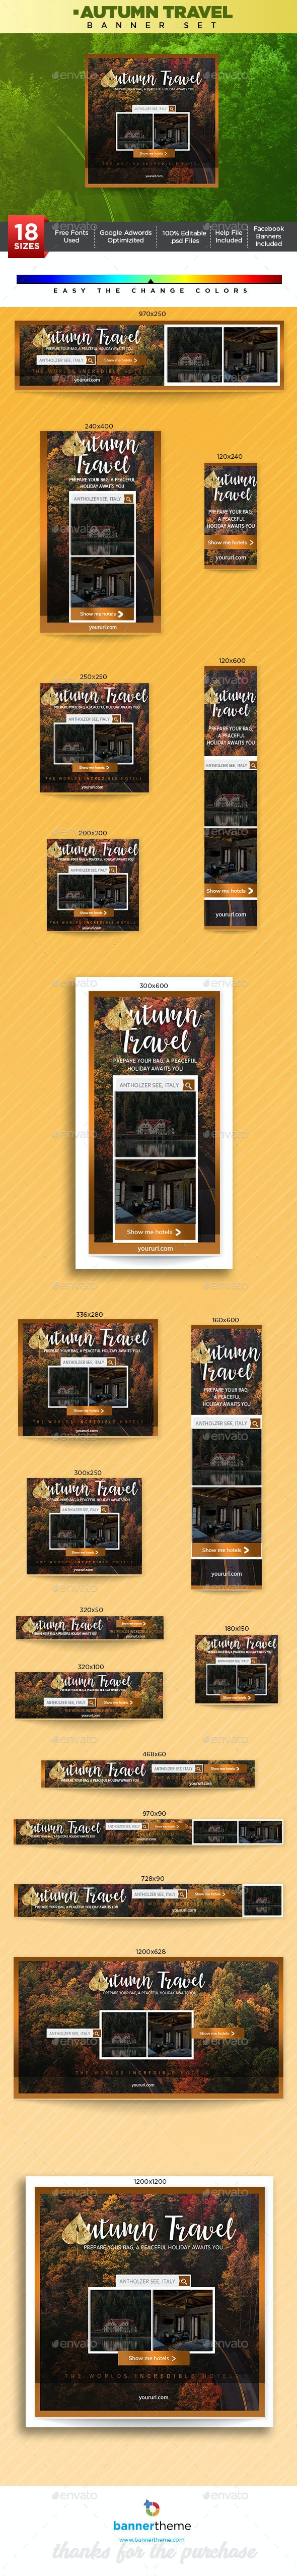 Autumn Travel Banner - Banners & Ads Web Elements